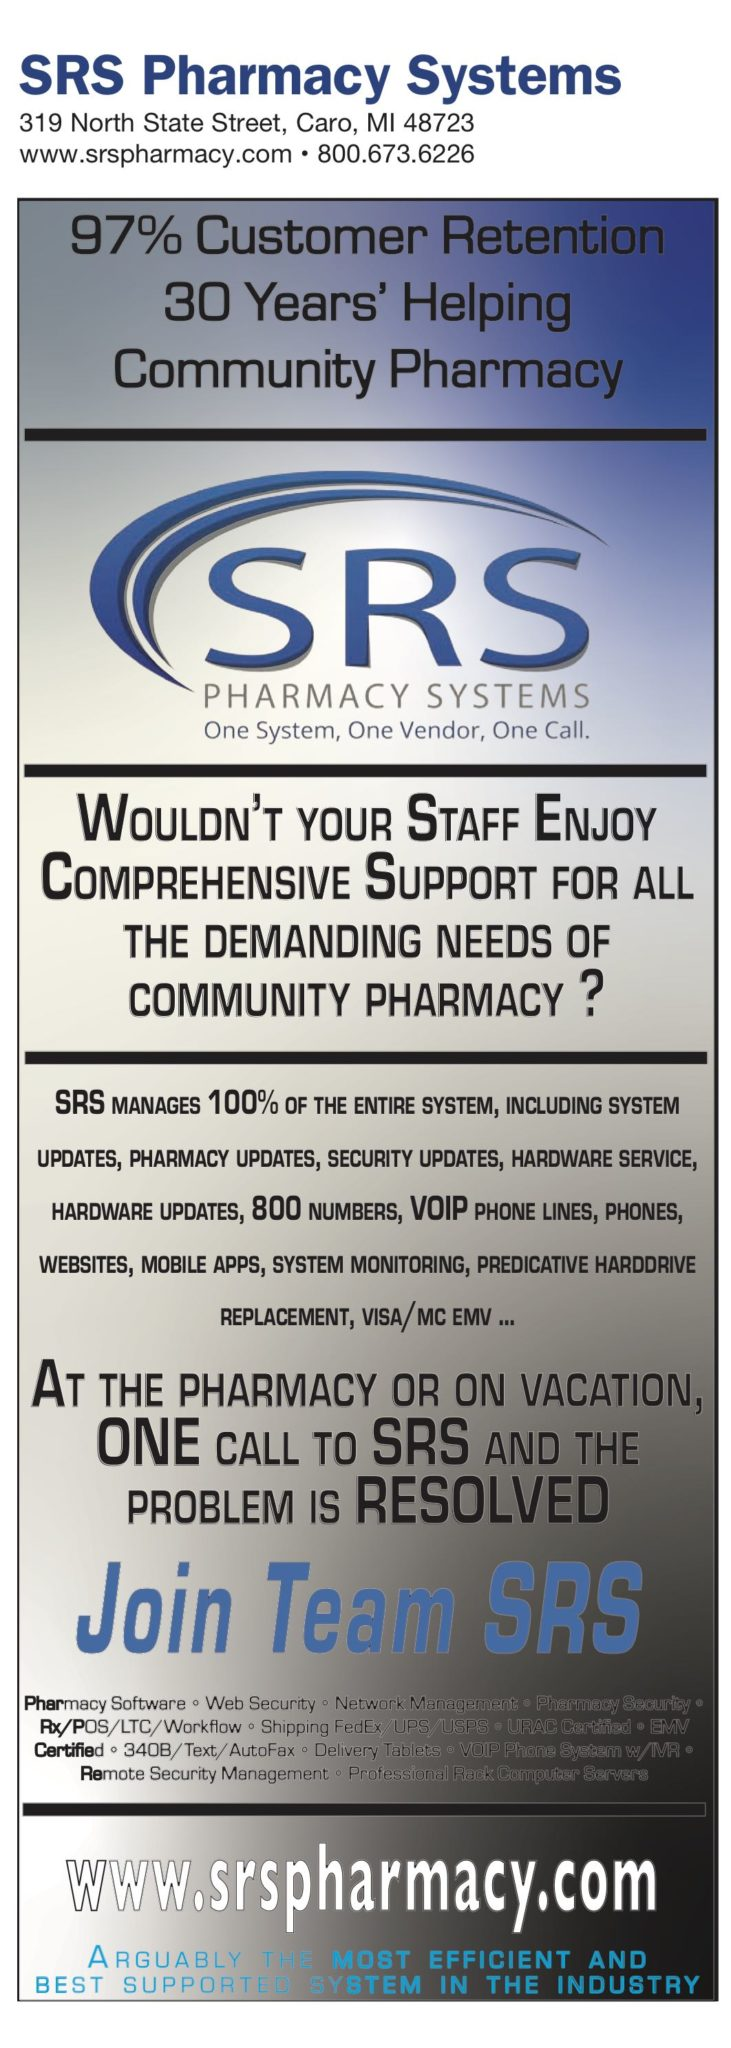 ComputerTalk_2019_Pharmacy_Buyers_Guide_38_SRS_Pharmacy_Software